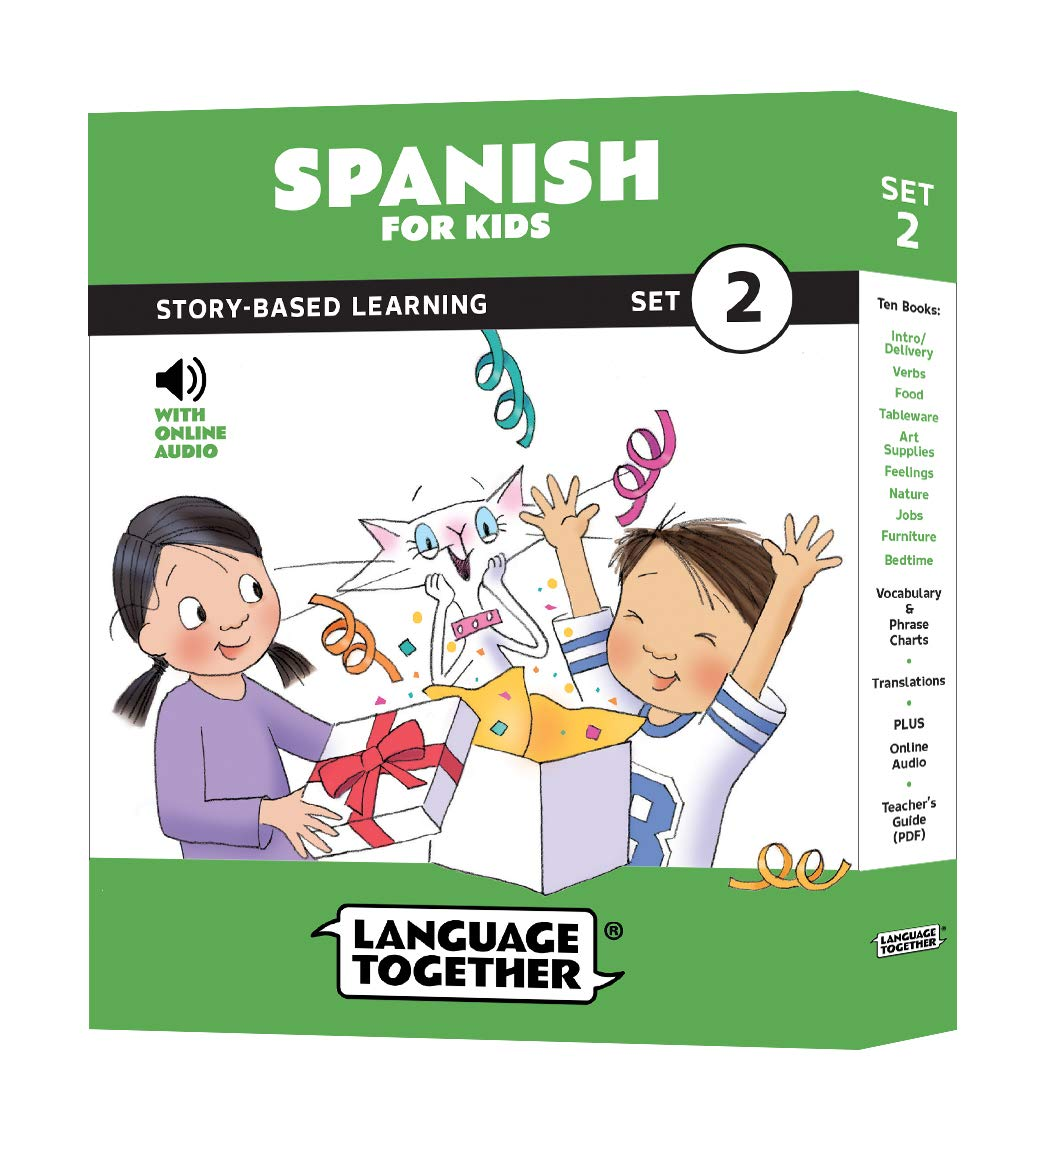 Spanish for Kids: 10 Early Beginner Reader Books with Online